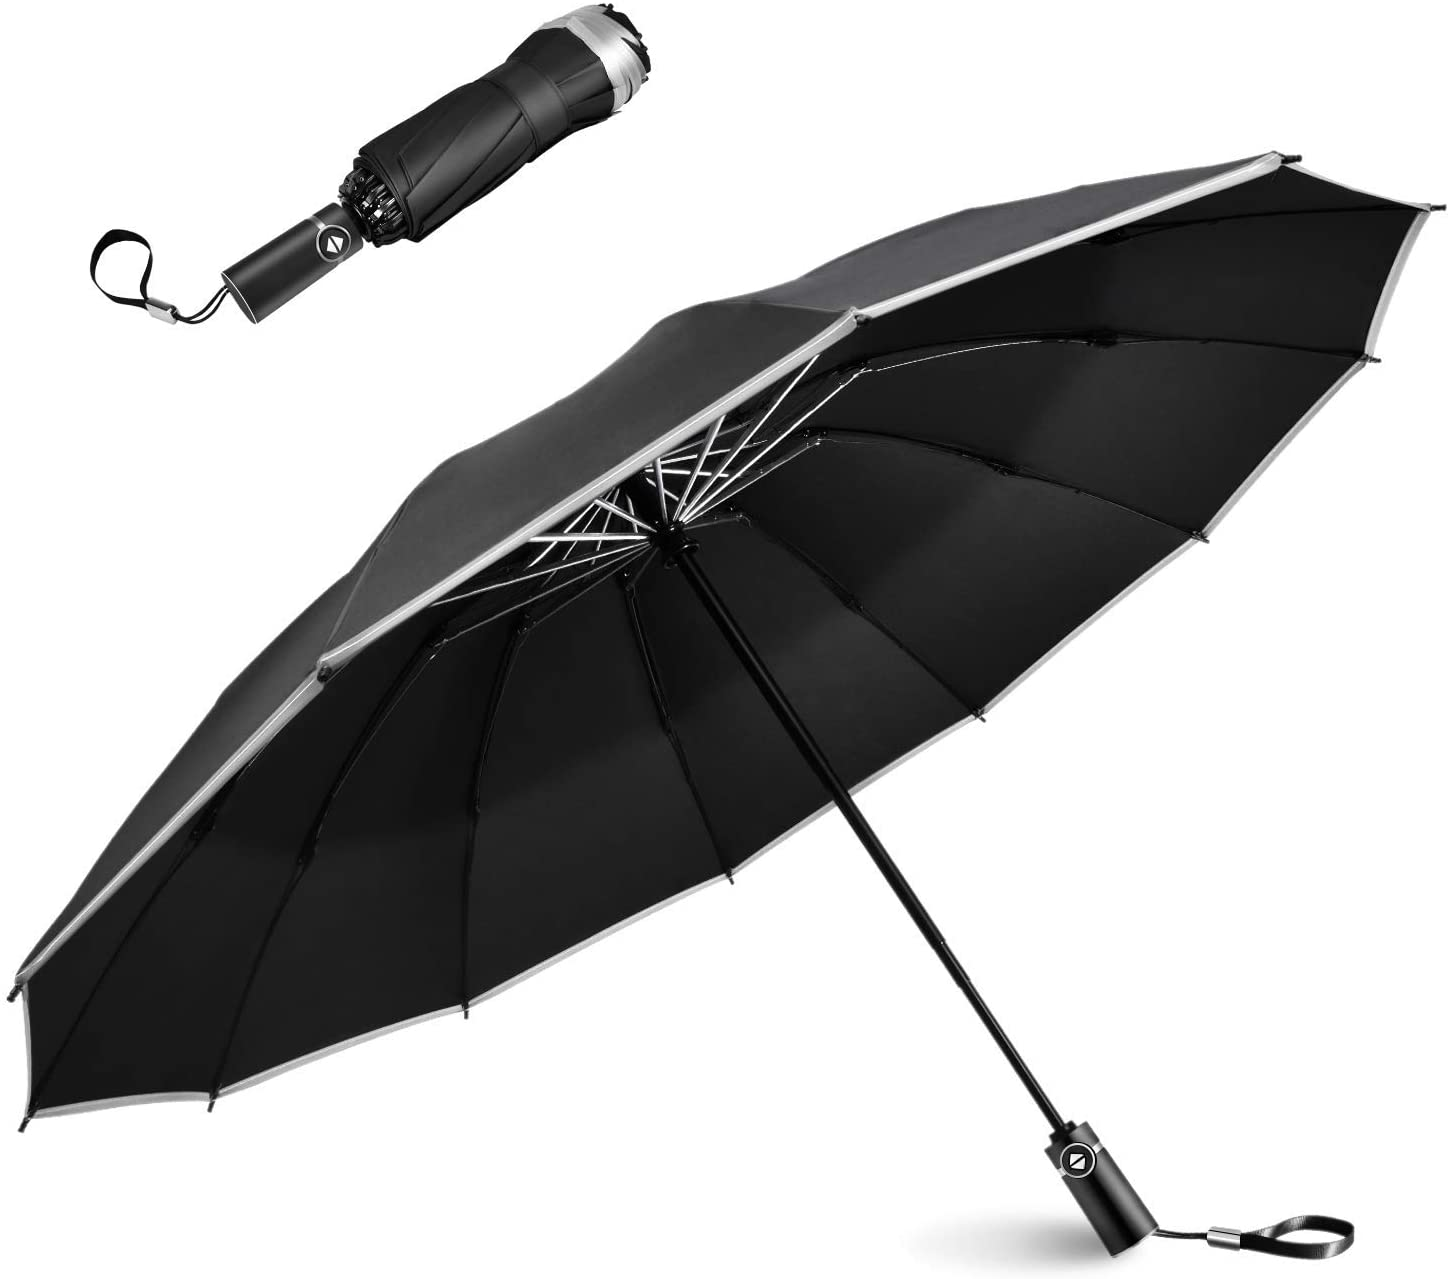 Lesoom Travel Umbrella Reverse Folding Inverted Umbrella Windproof Withstand Powerful Gusts Sun Umbrella with Teflon Coating and 12 Resin-reinforced Fiberglass Ribs